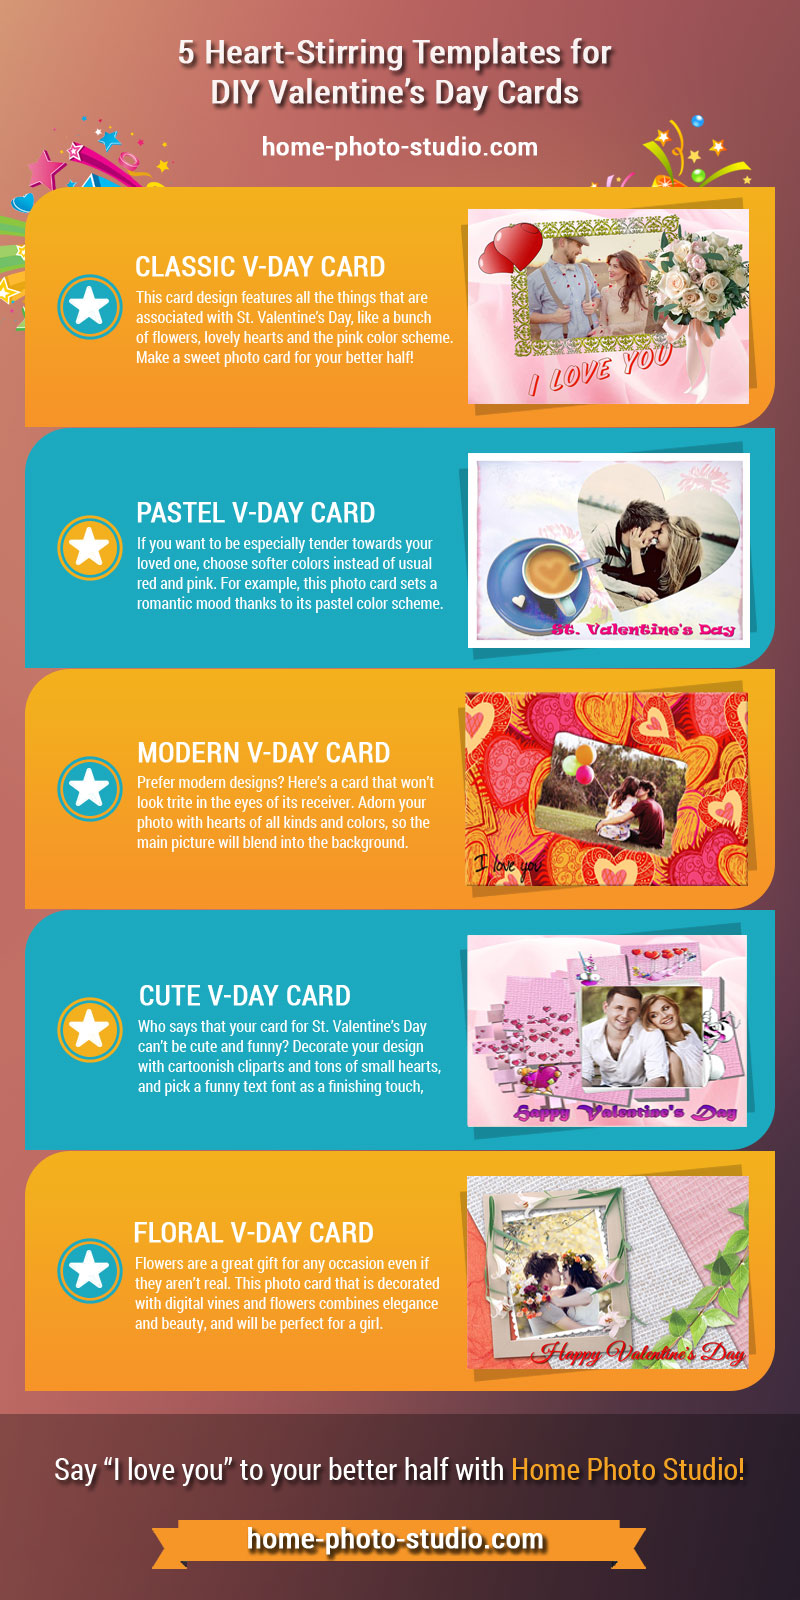 5 photo cards for Valentine's Day